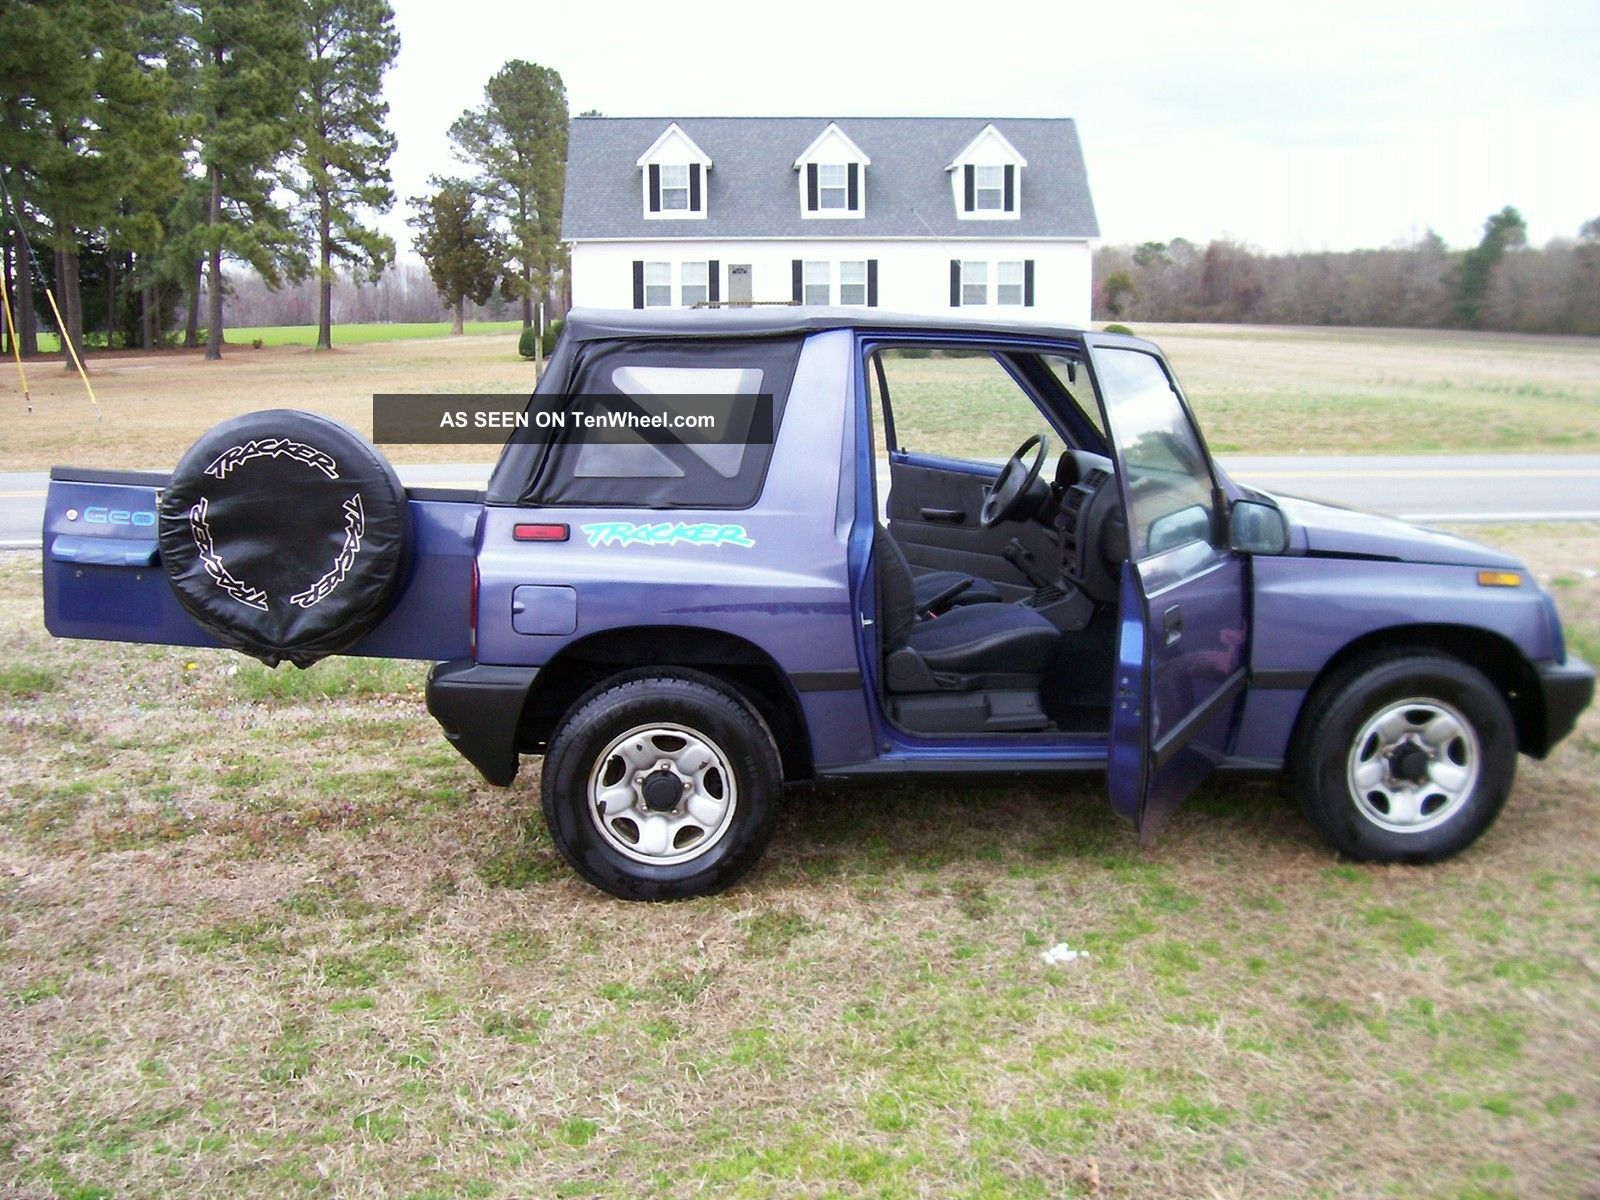 1996 geo tracker information and photos zombiedrive. Black Bedroom Furniture Sets. Home Design Ideas